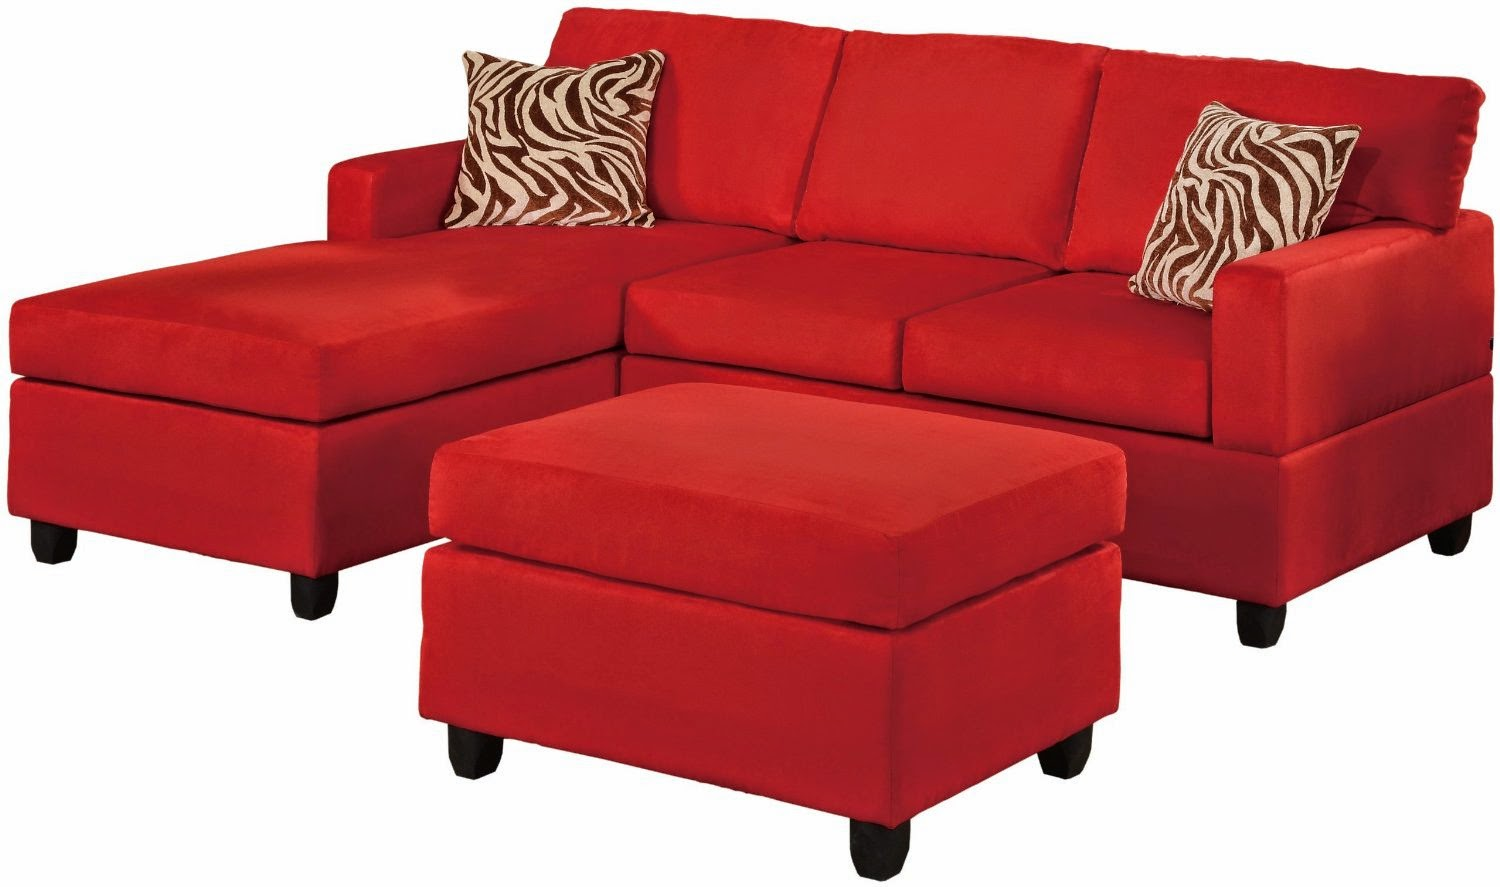 Red couches Red sofas and loveseats